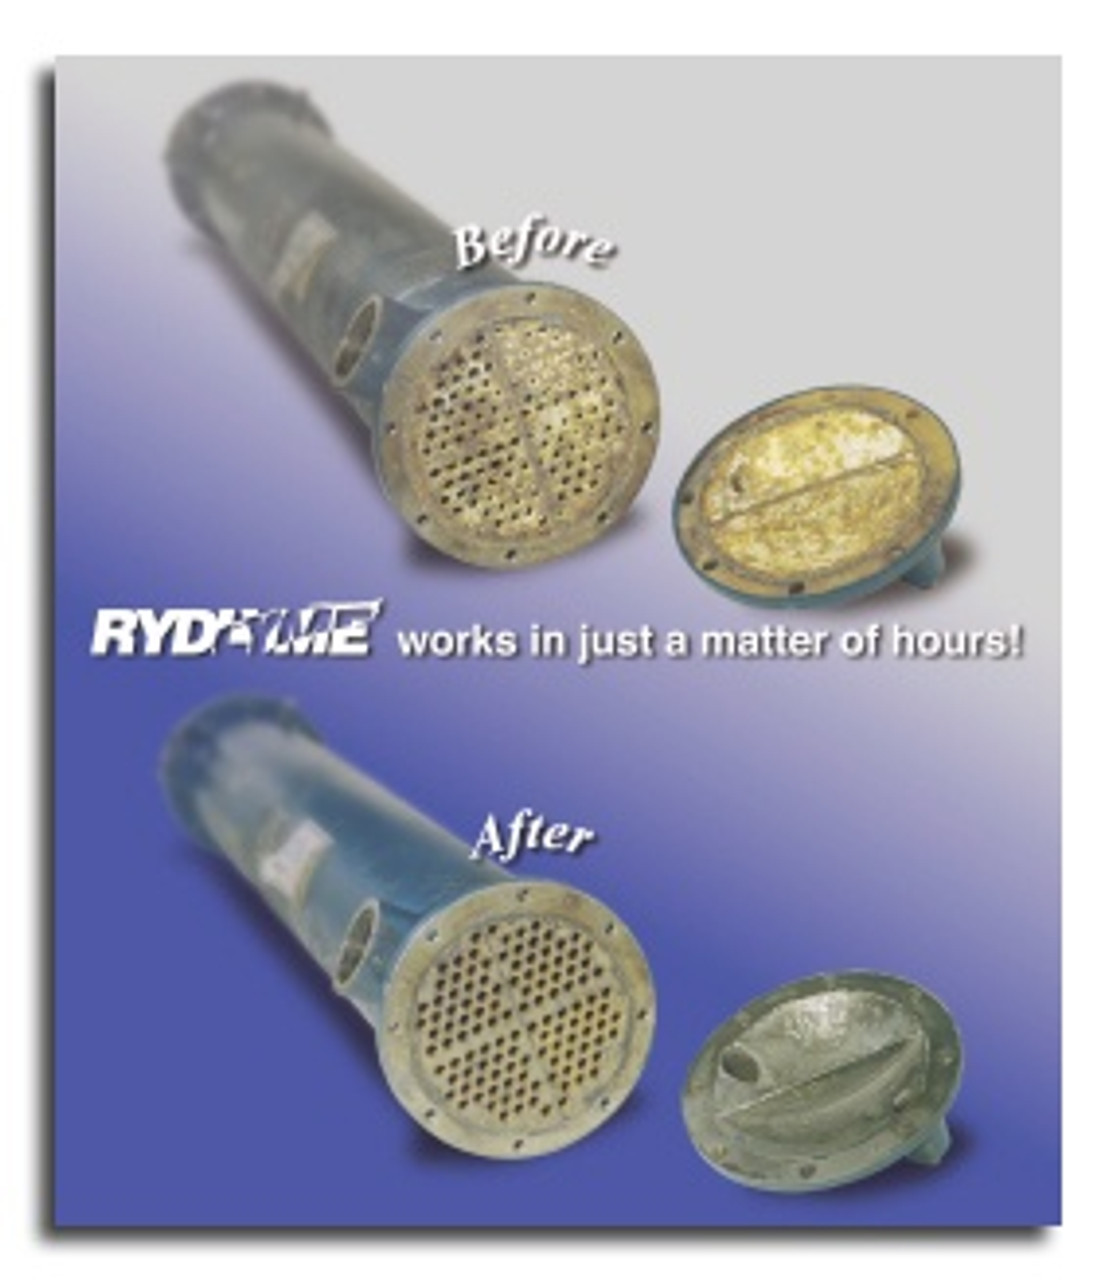 Rydlyme Biodegradable Descaler - part4engines.com